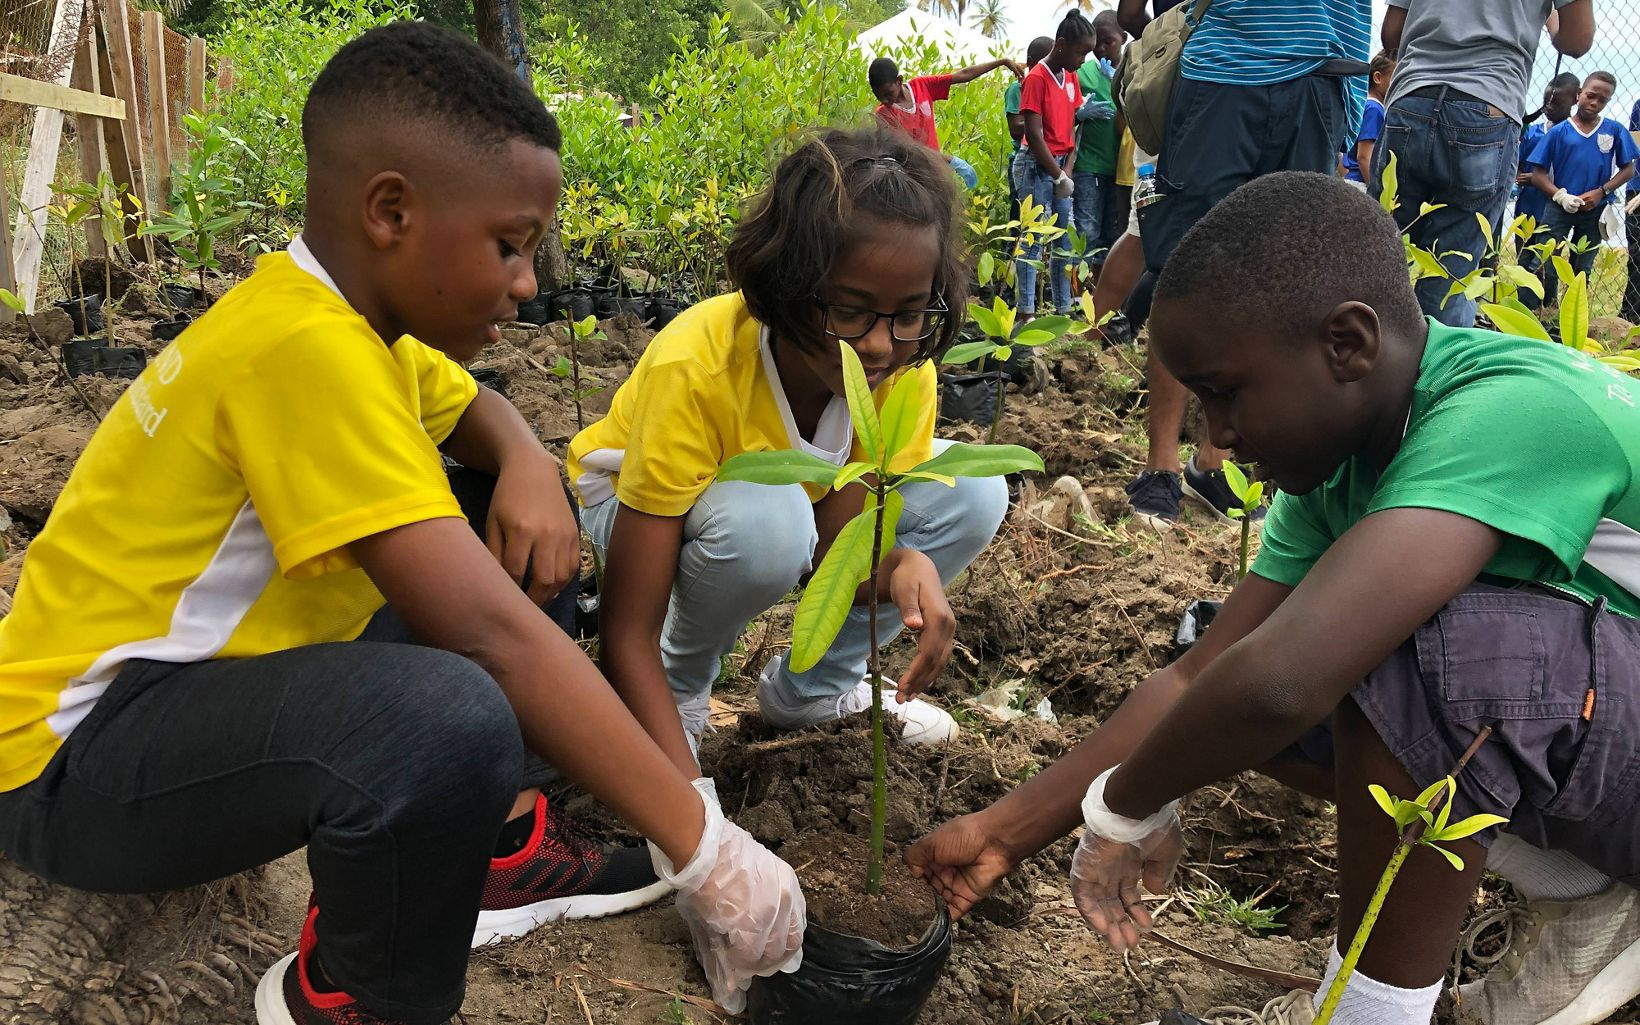 Kids plant mangrove seedlings at a community event